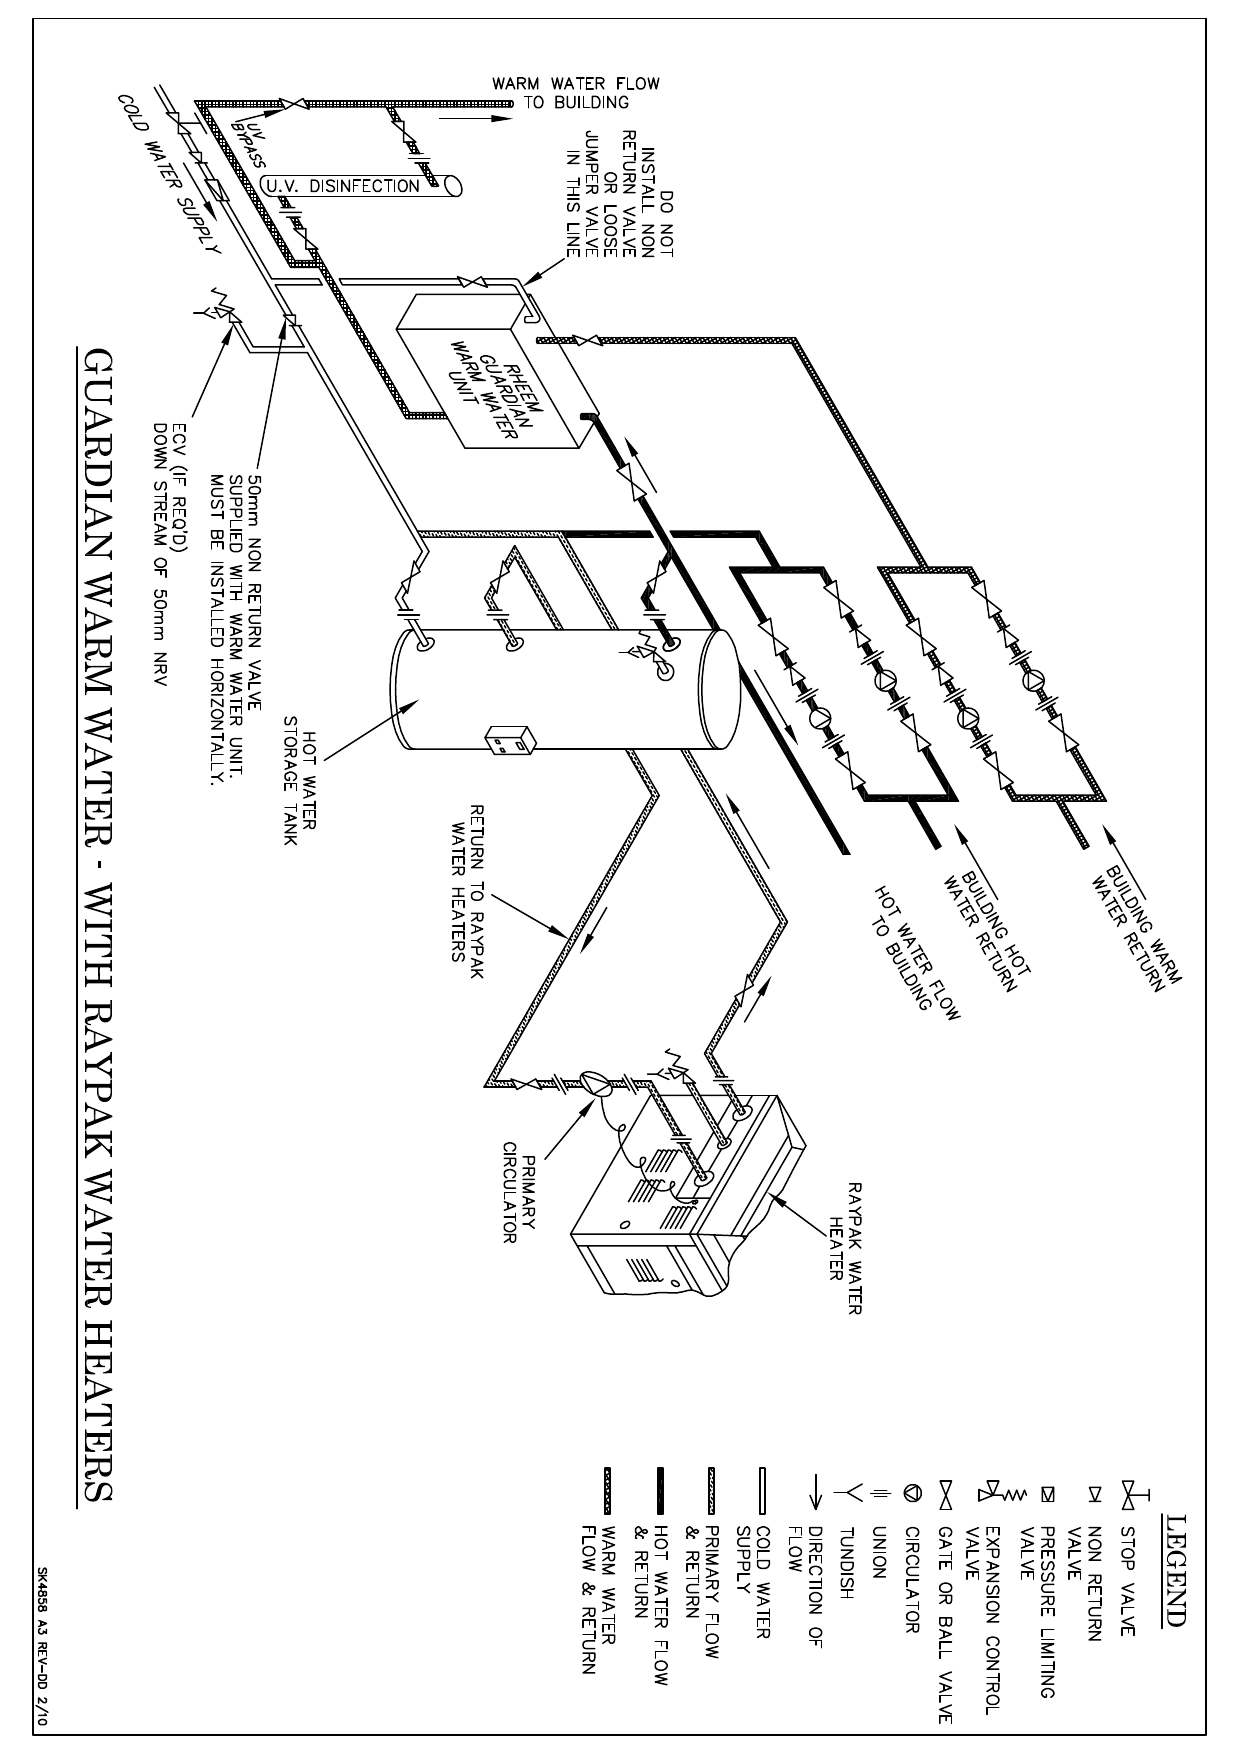 Rheem Installation Diagram Guardian with Raypak SK4858